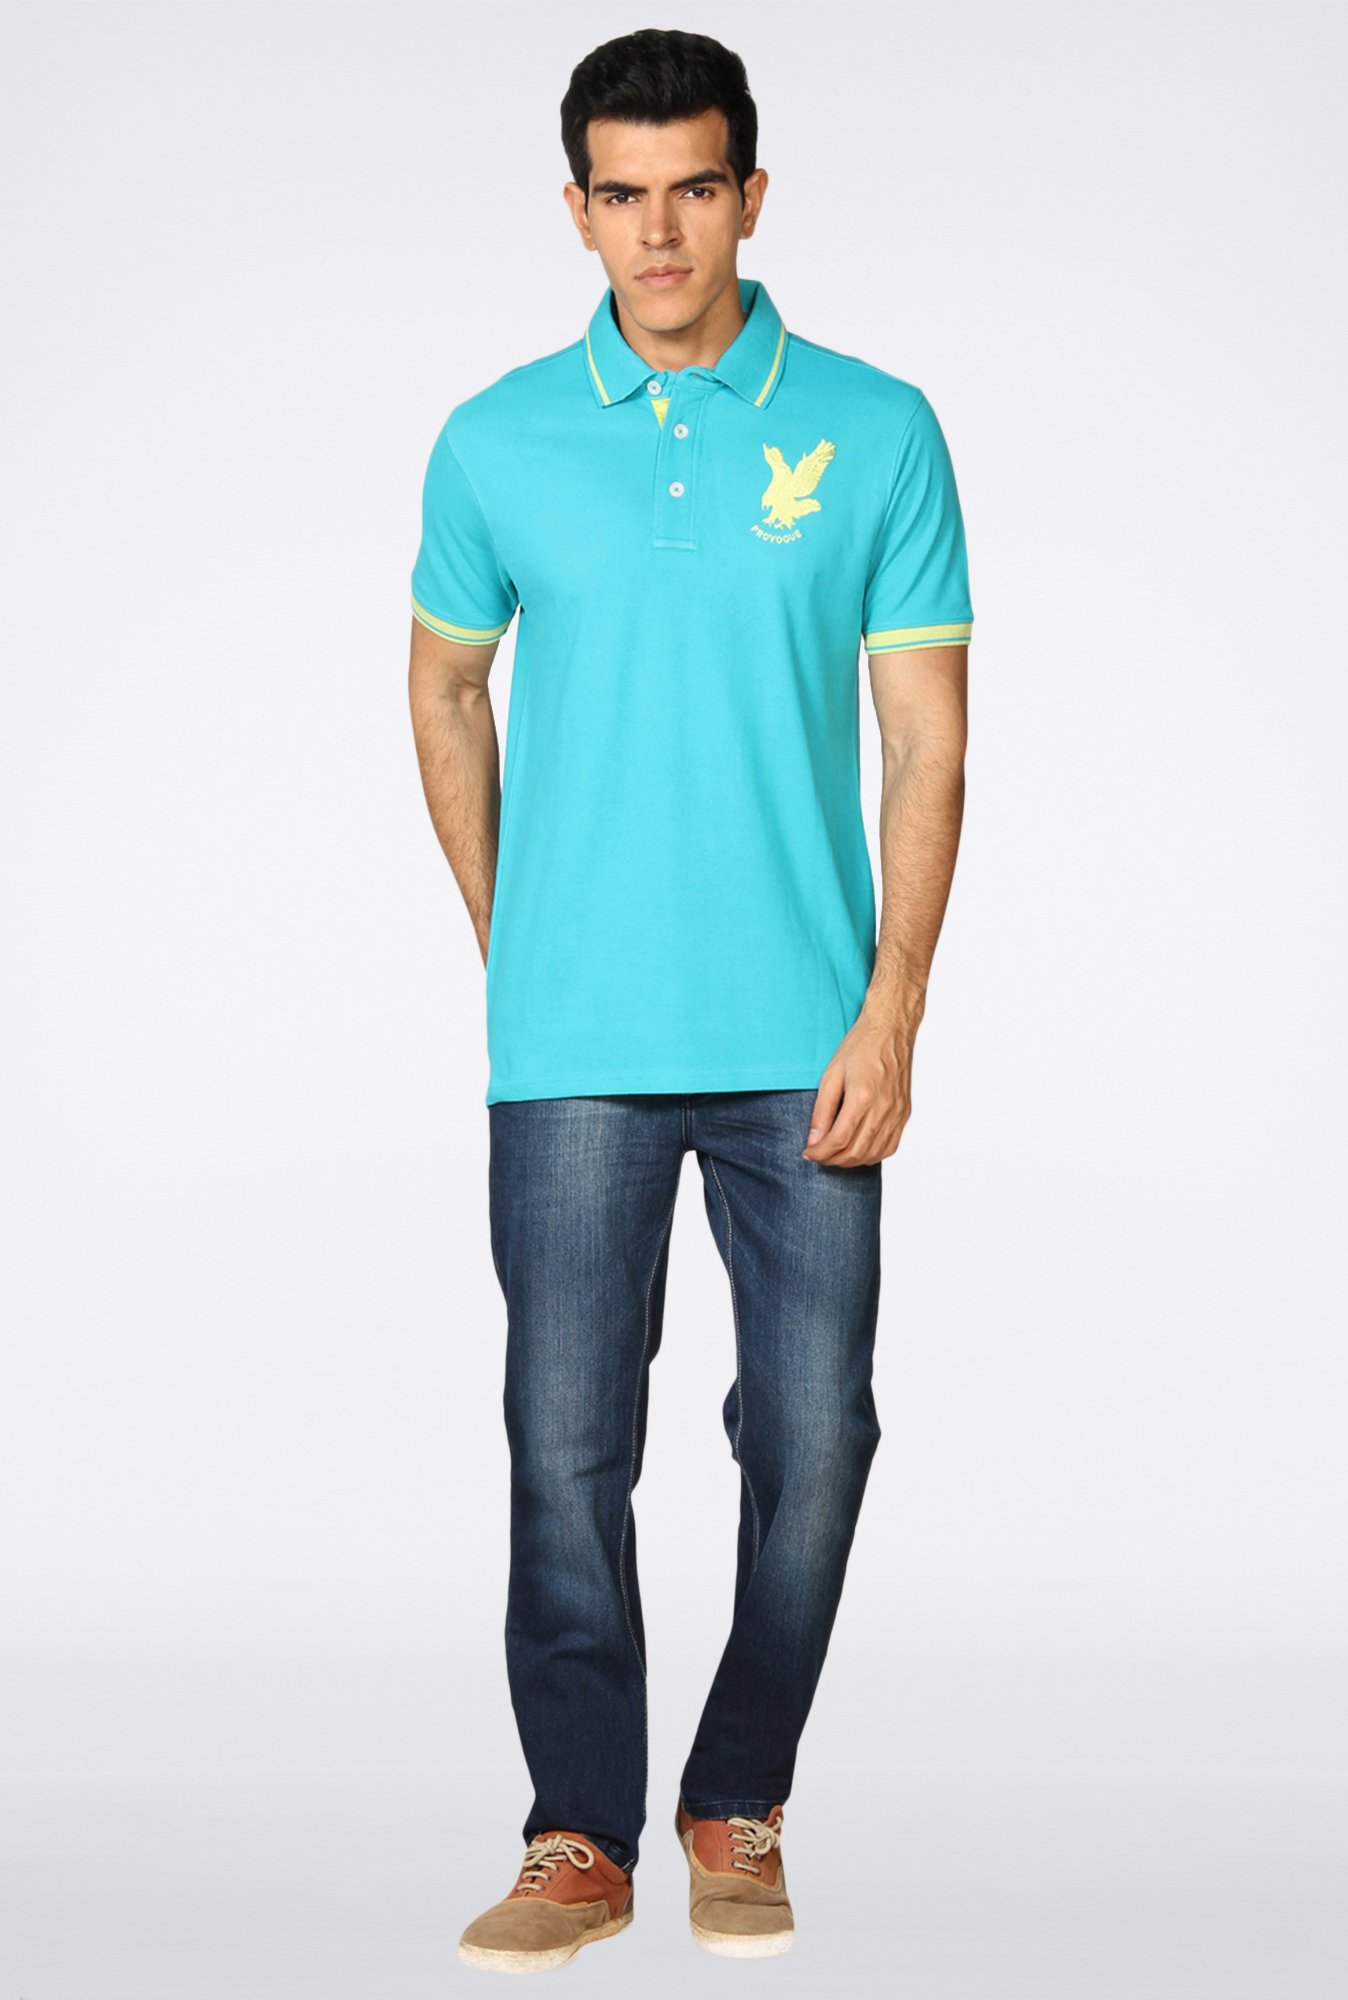 Provogue Aqua Polo T-Shirt